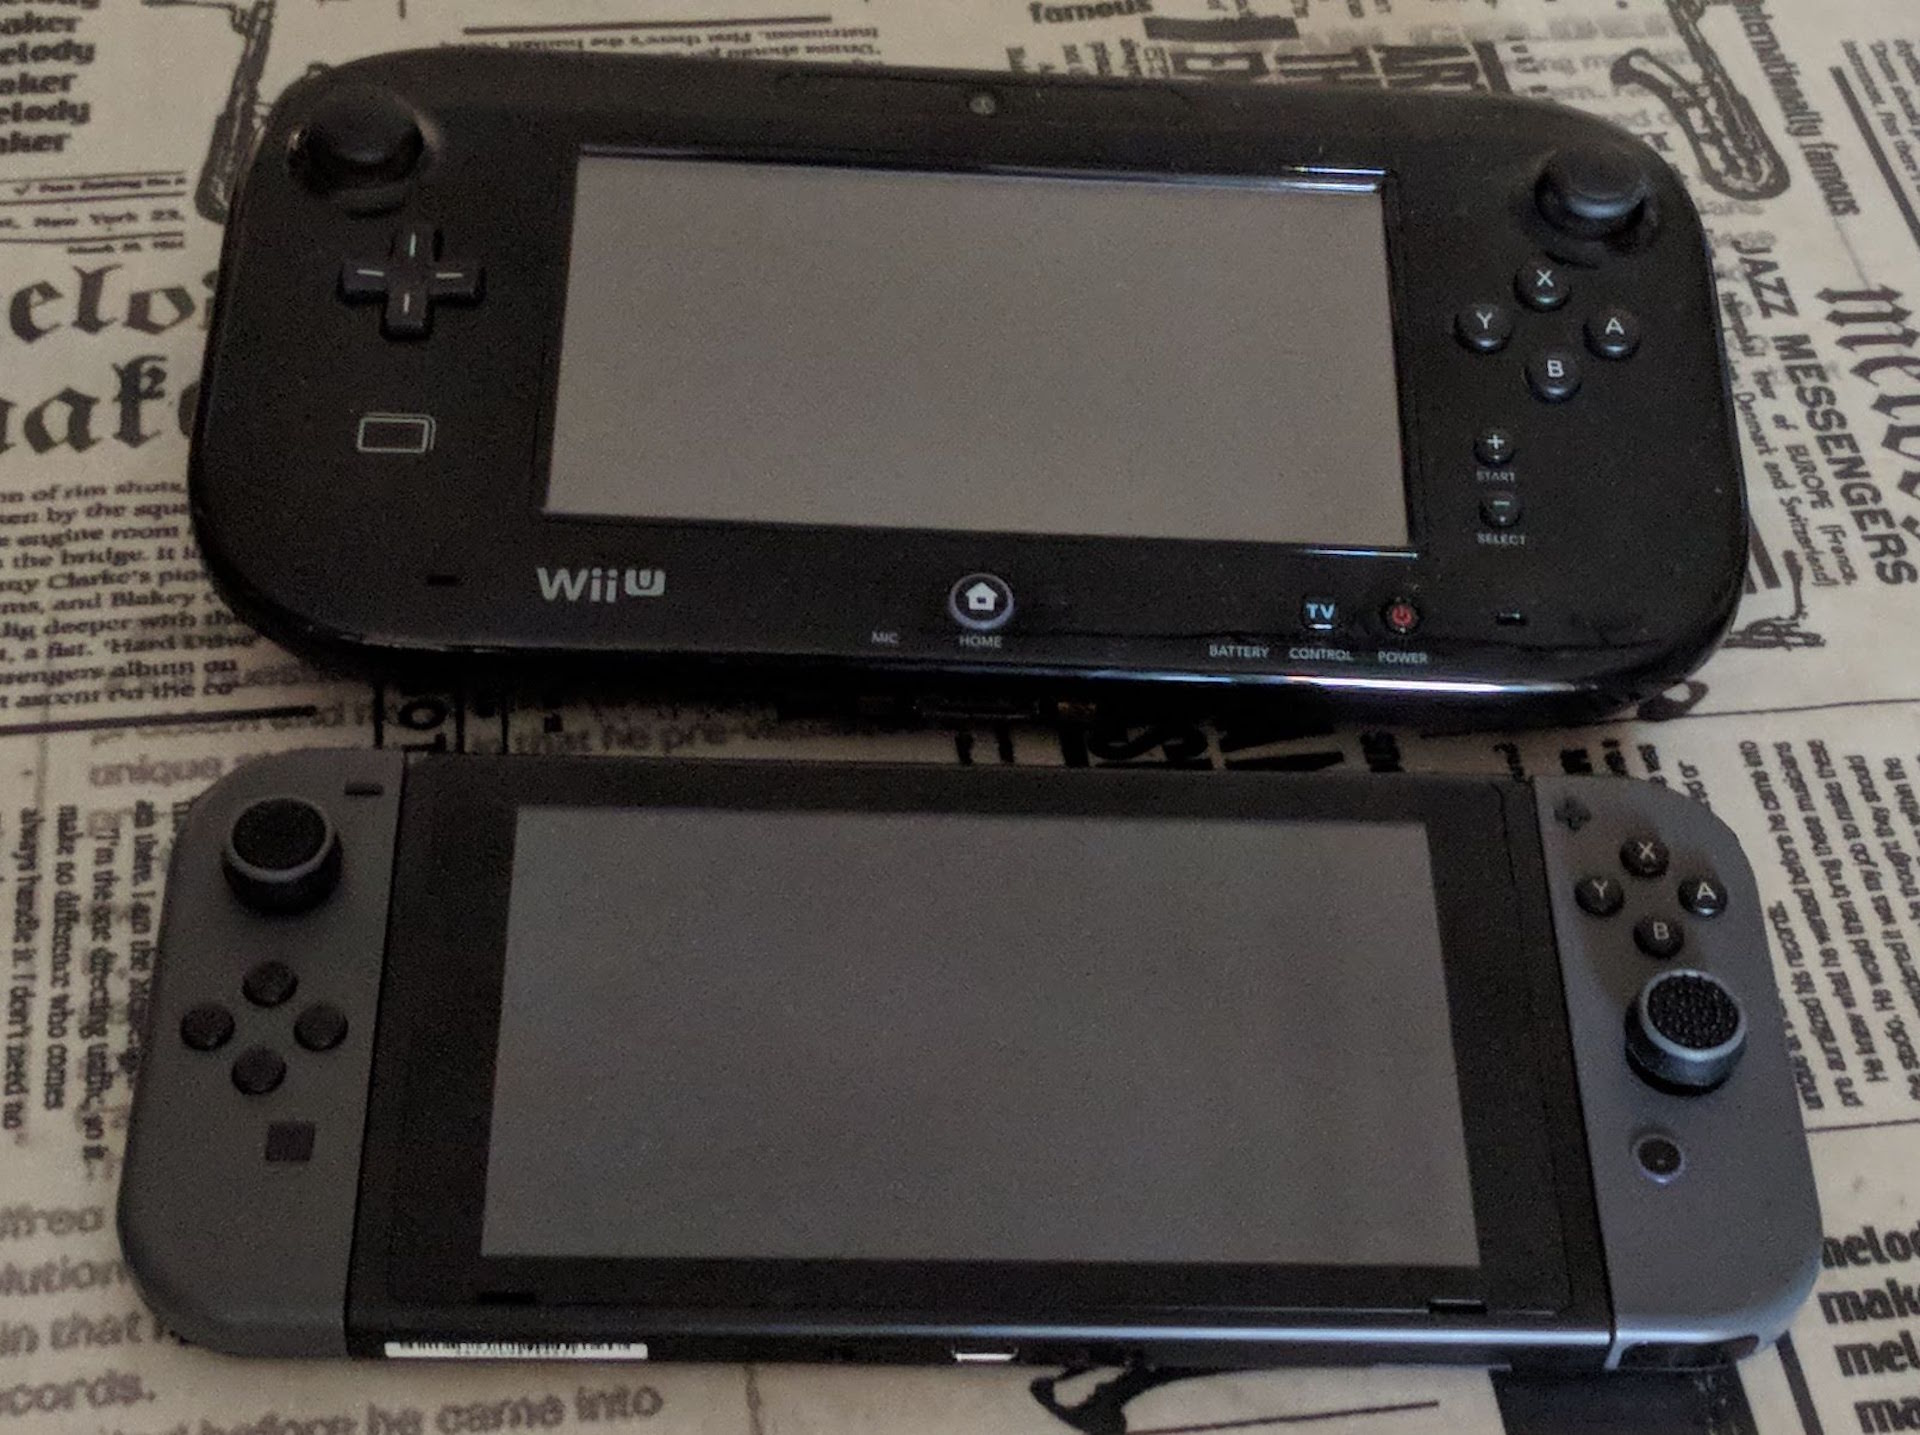 Switch vs WiiU